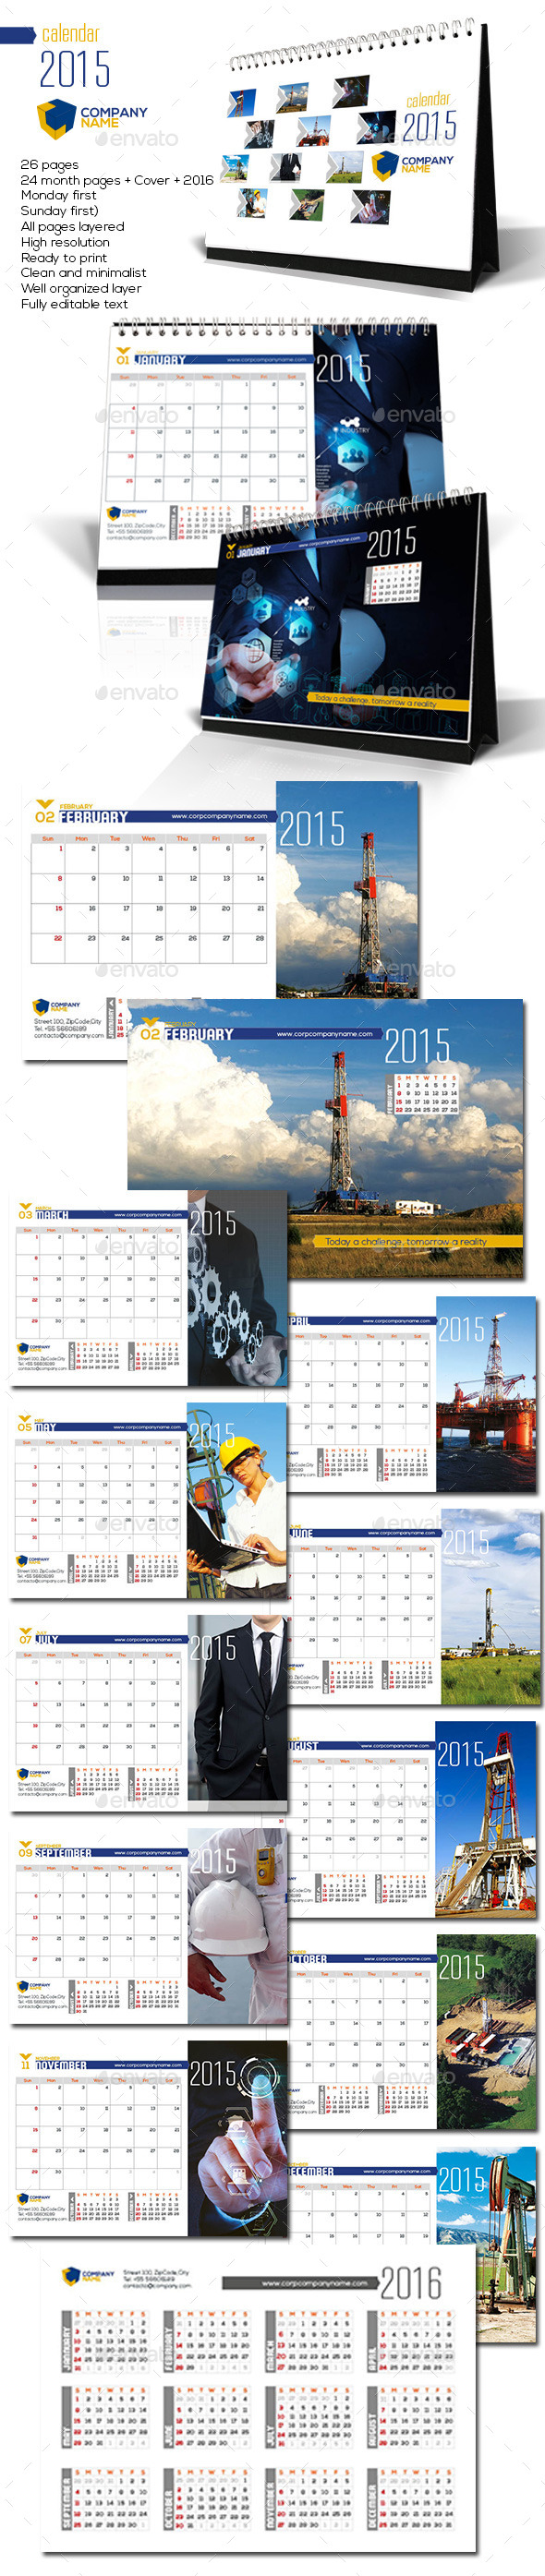 GraphicRiver Corporate Desktop Calendar 2015 9469517